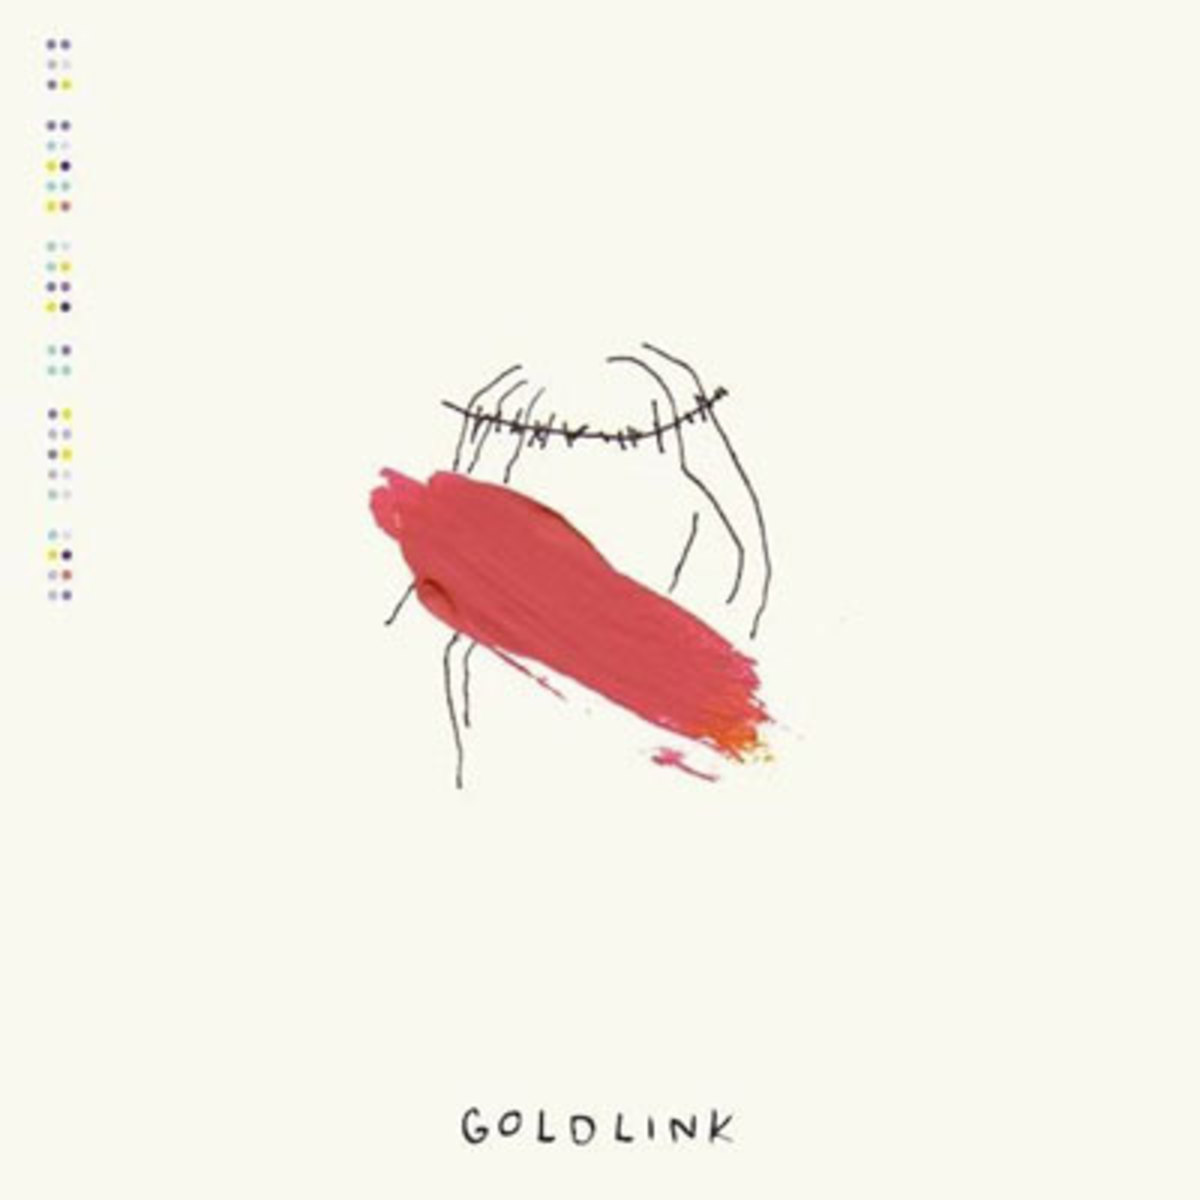 goldlink-and-after-that-we-didnt-talk-1-listen.jpg